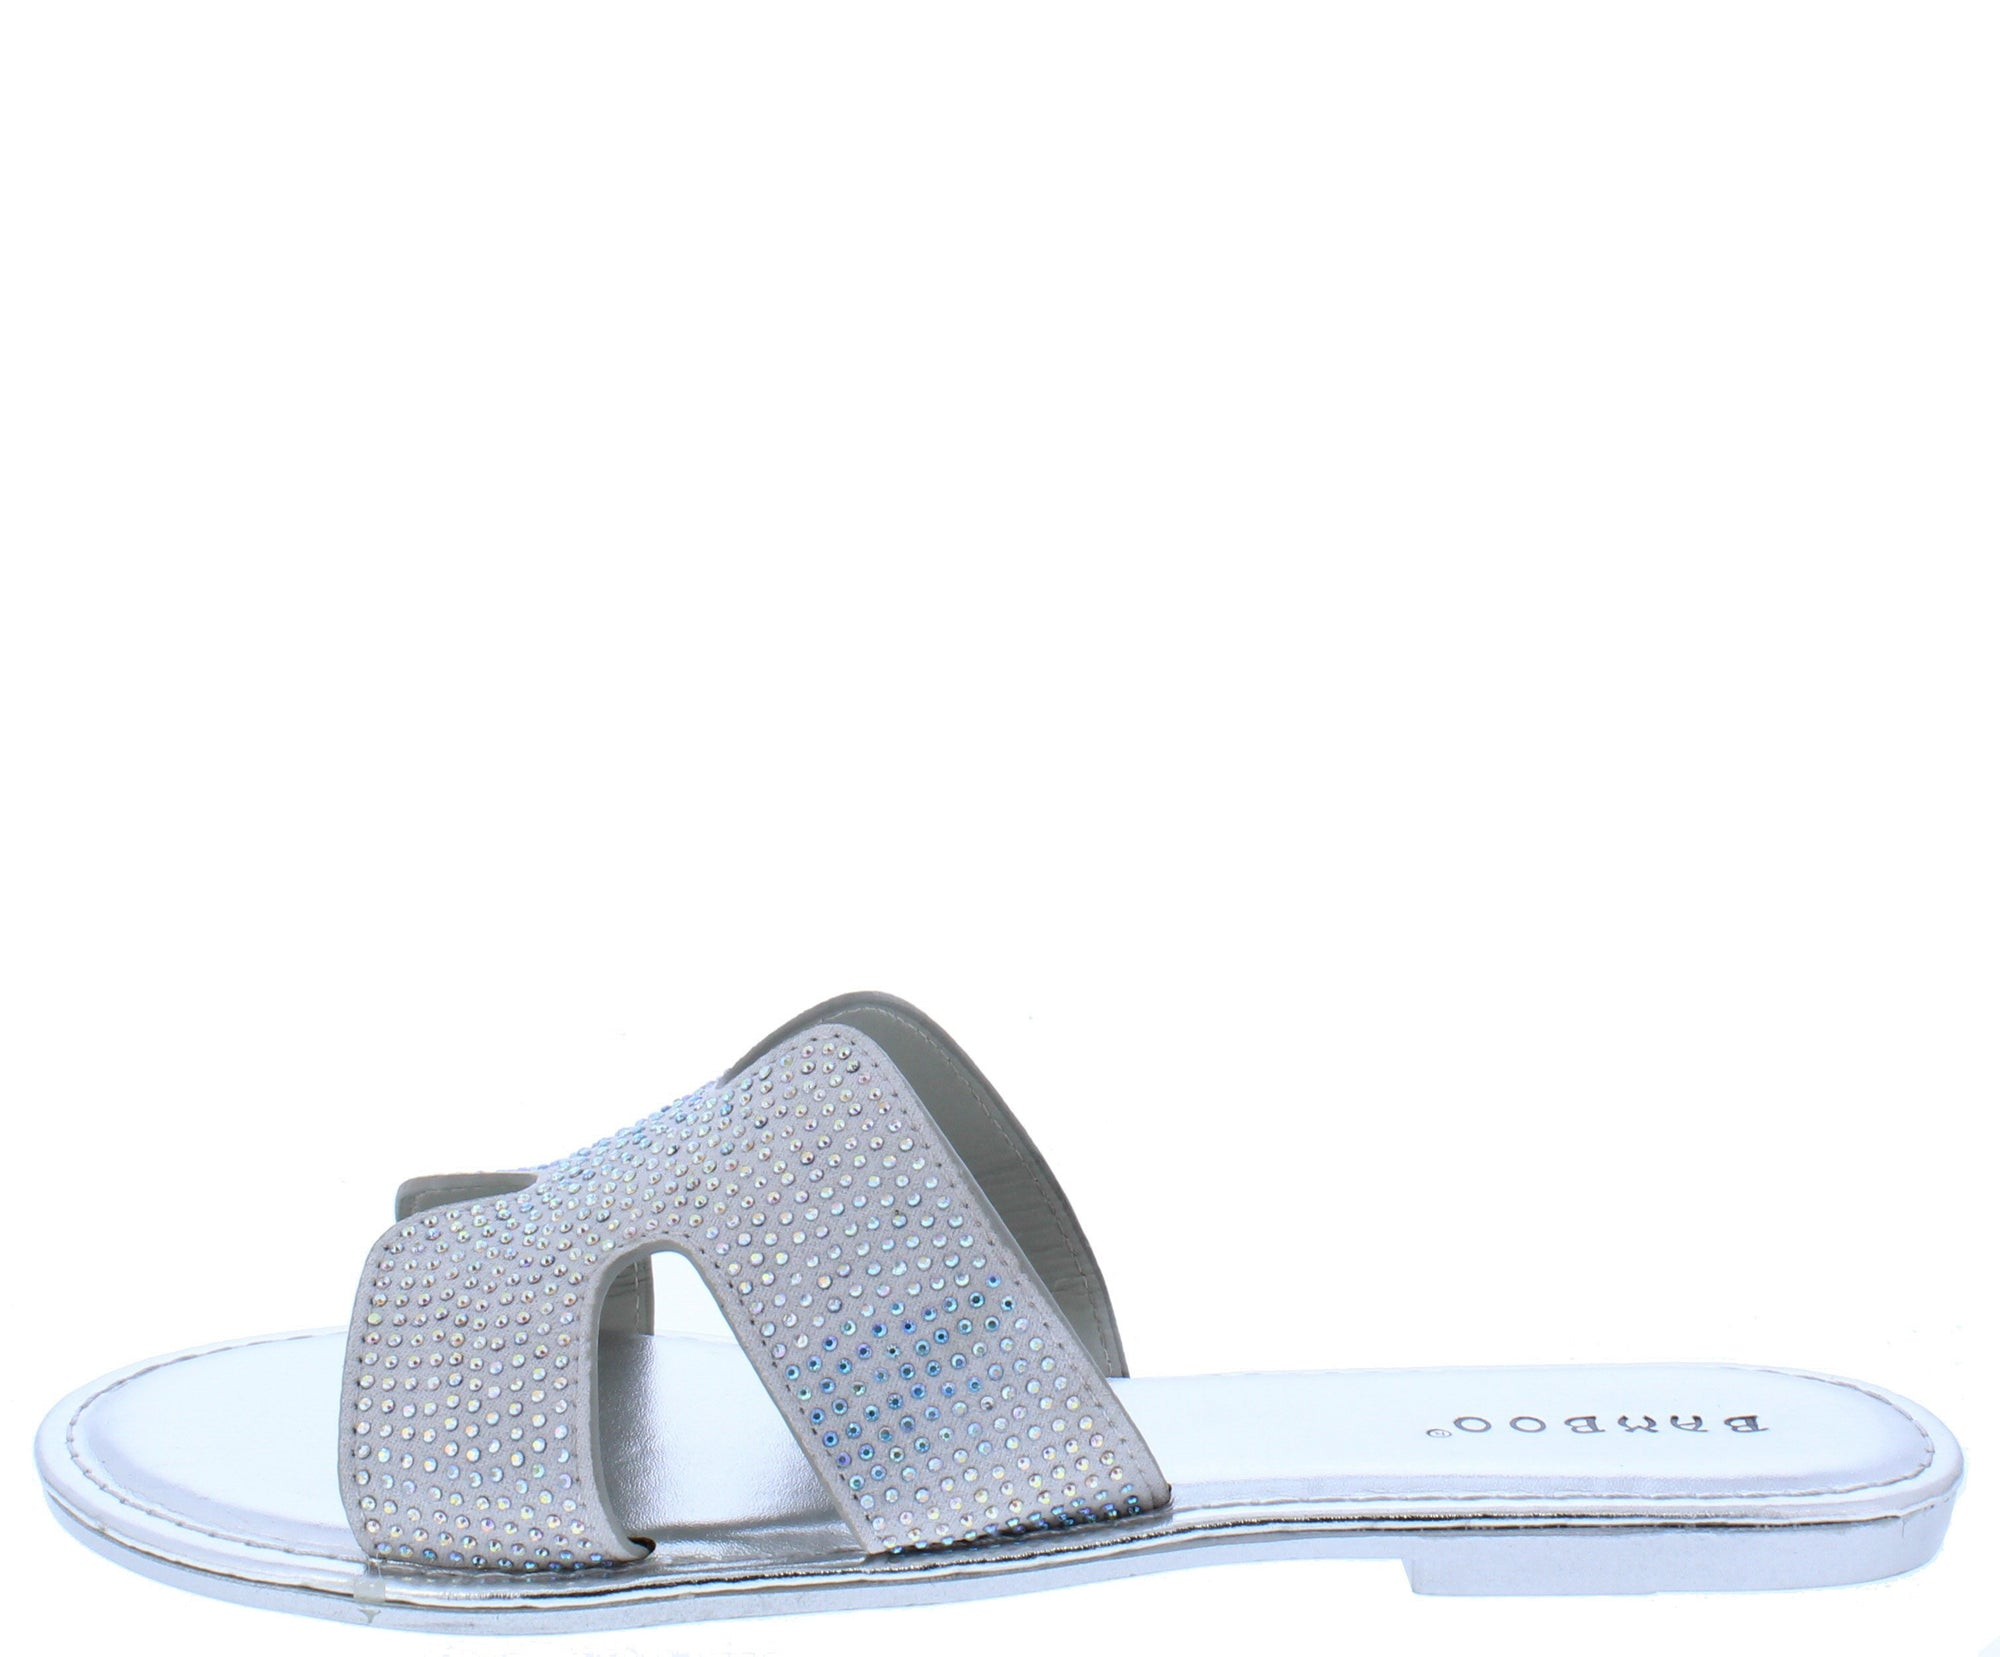 271152c1903 Christy06 Silver Sparkle Open Toe Cut Out Mule Slide Sandal - Wholesale  Fashion Shoes